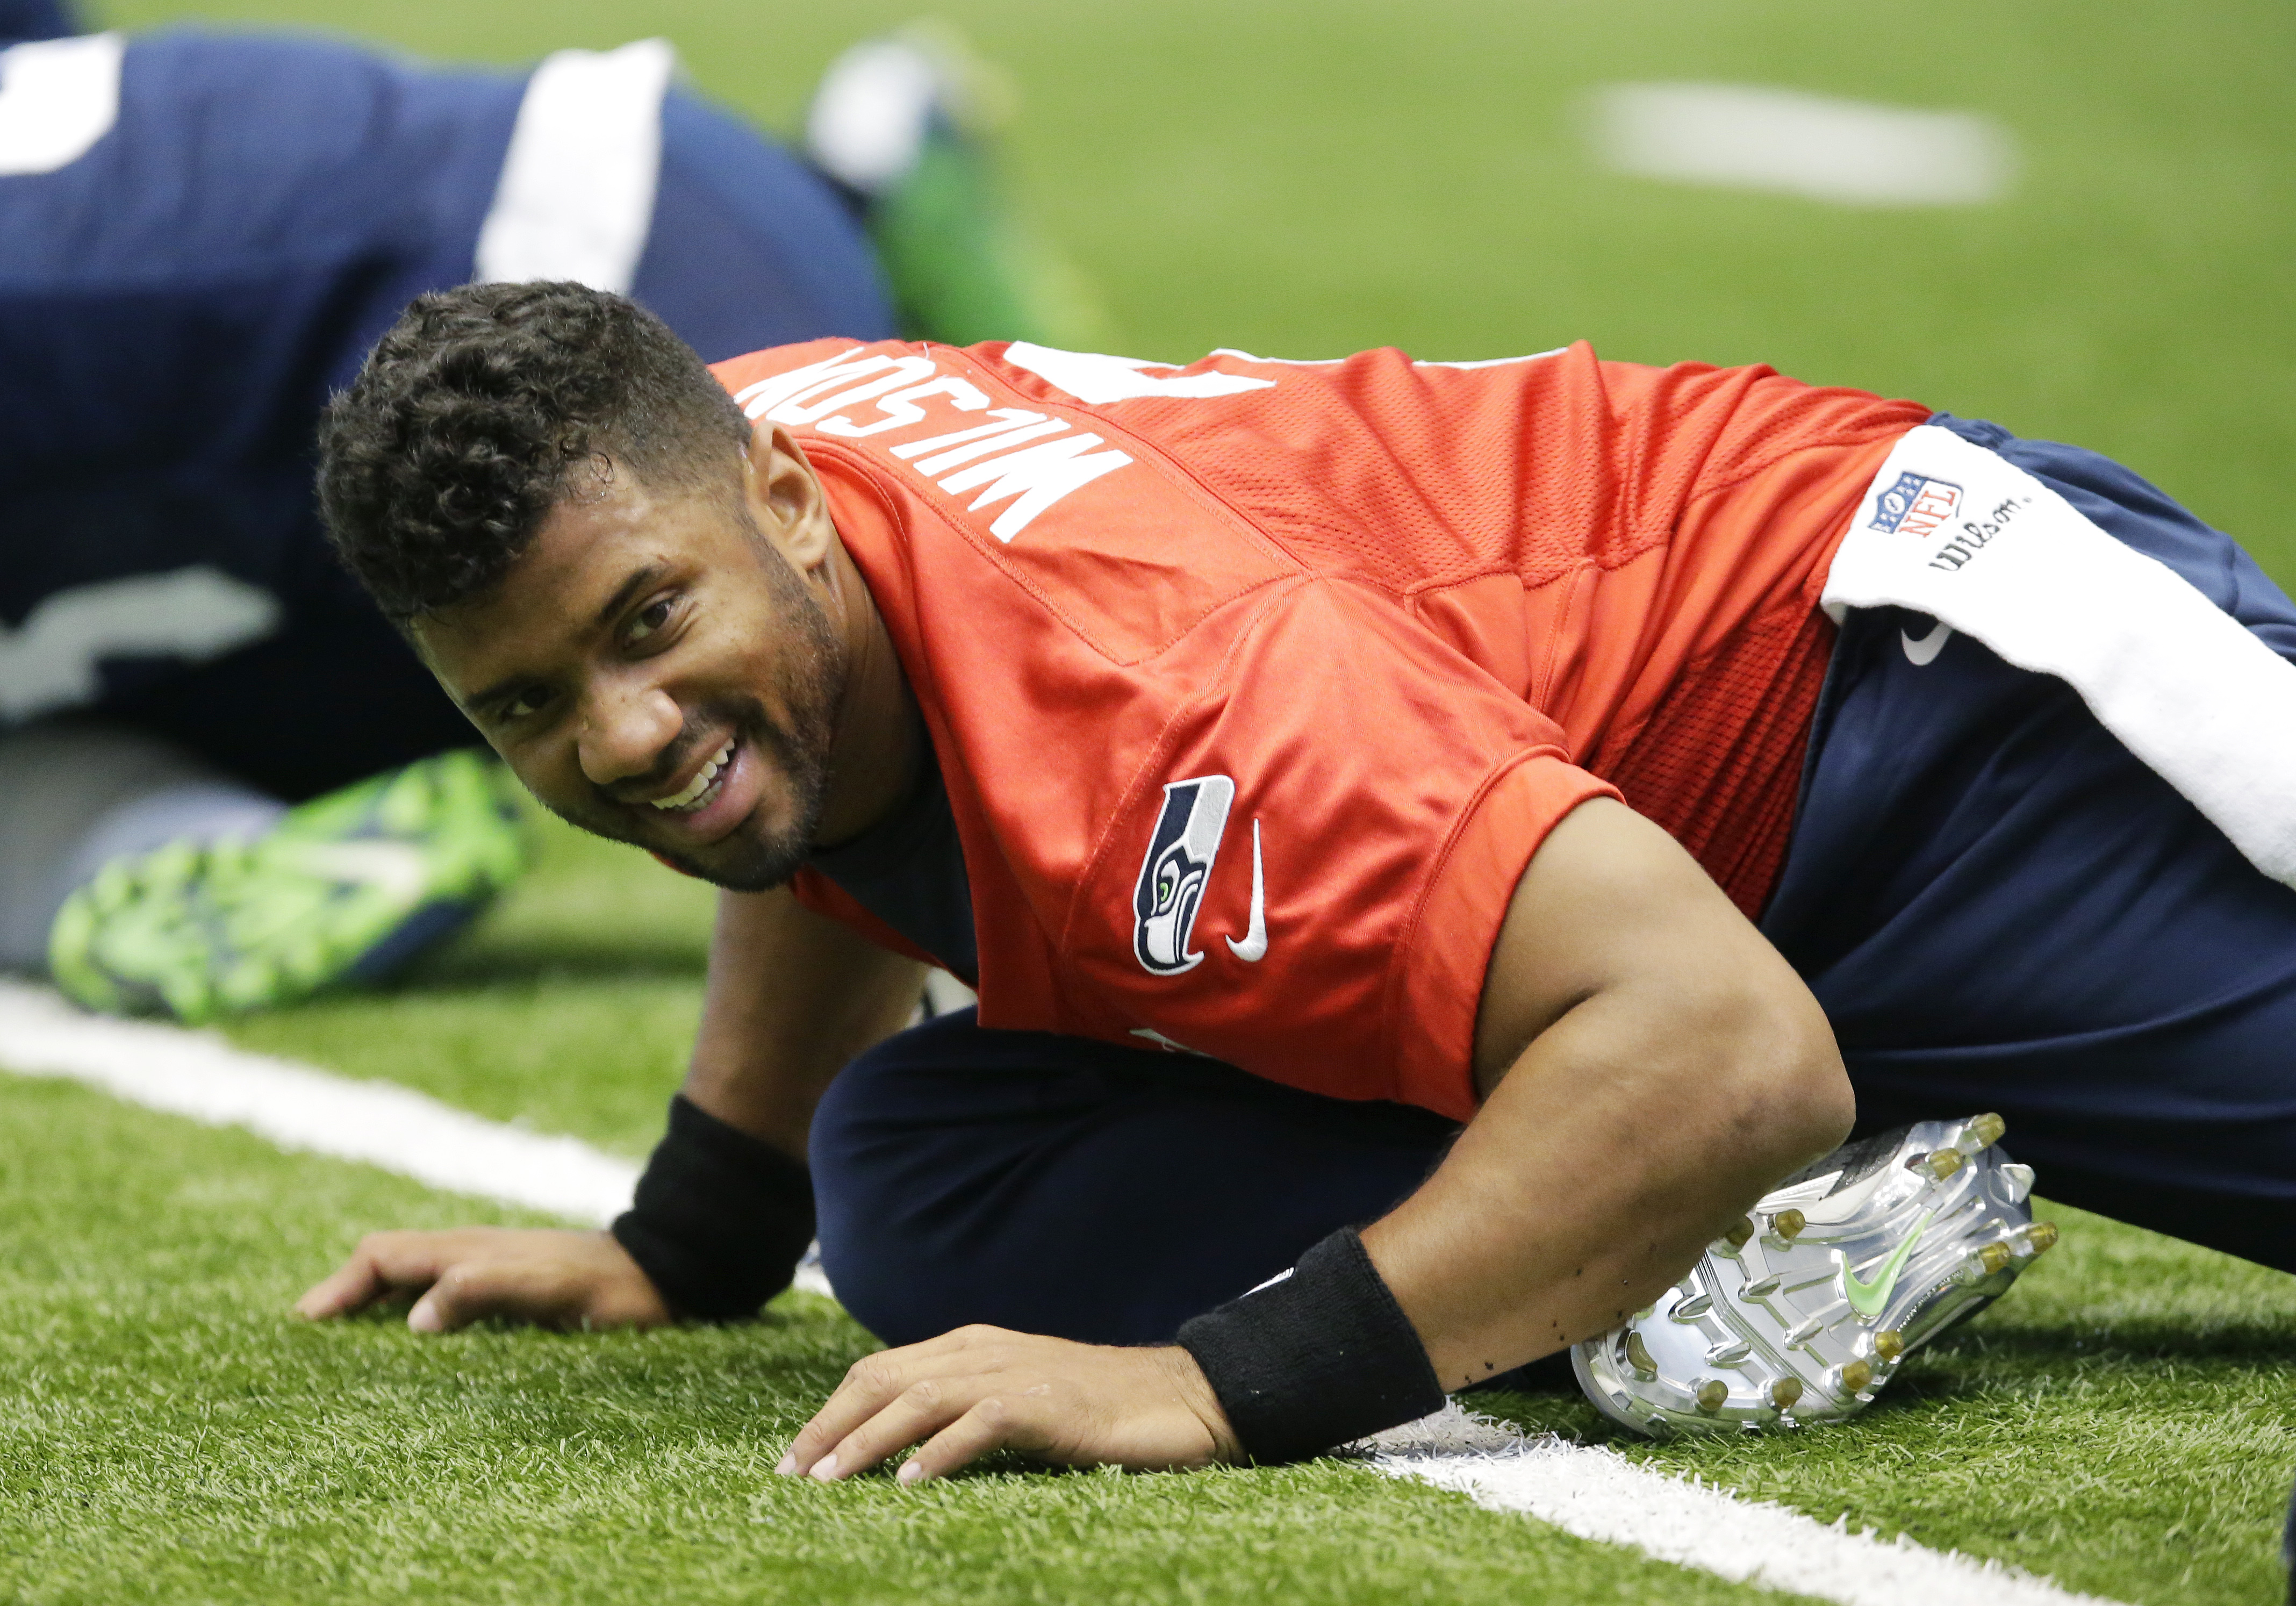 Seattle Seahawks quarterback Russell Wilson smiles as he stretches with teammates before an organized team activity, Tuesday, June 2, 2015, in Renton, Wash. (AP Photo/Ted S. Warren)